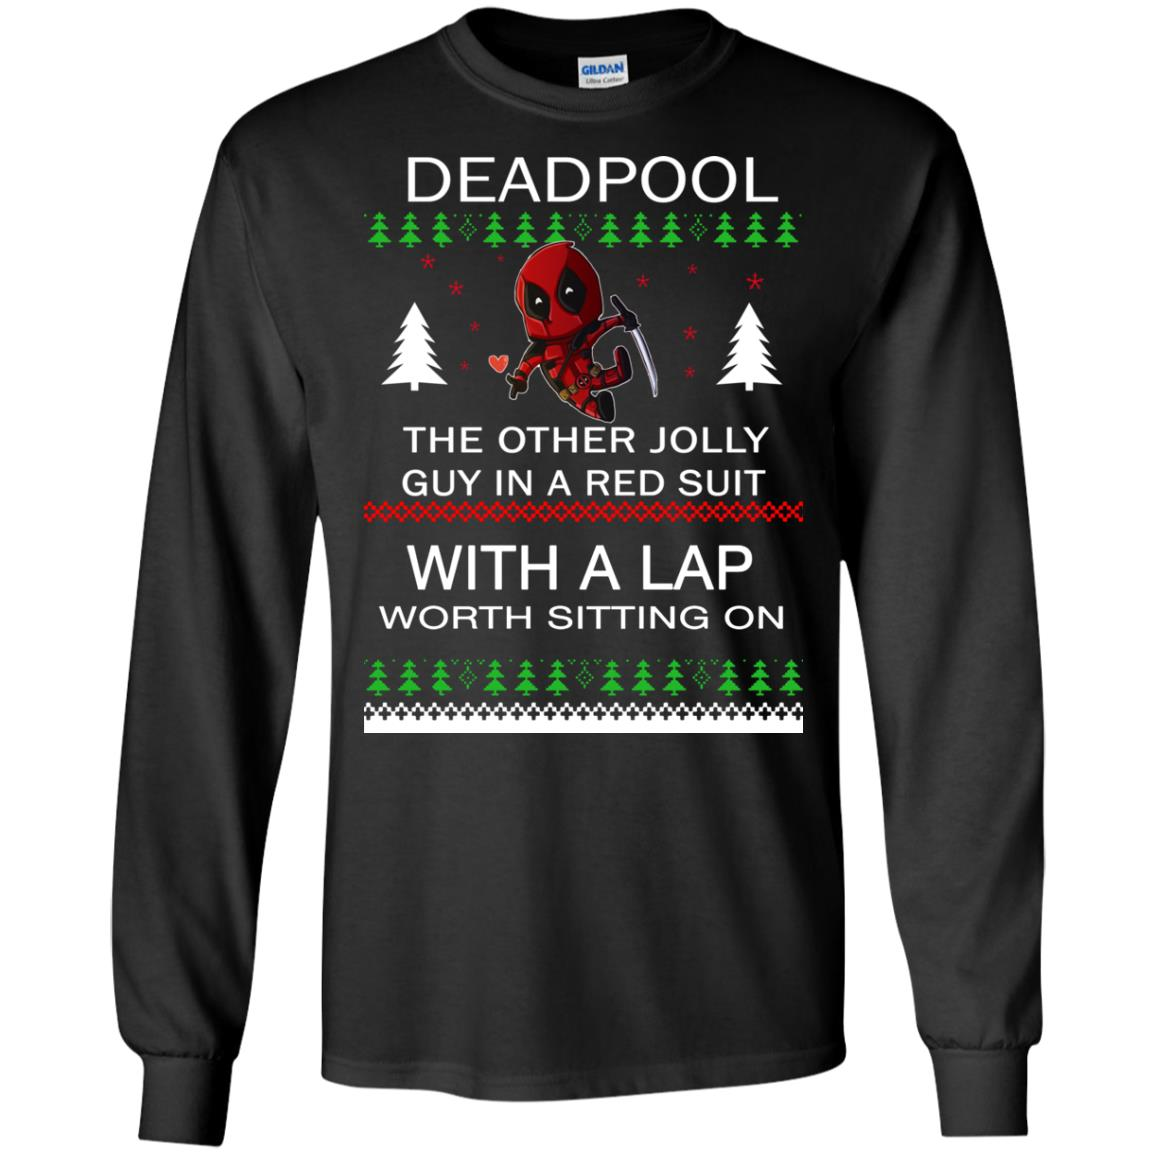 image 2829 - Deadpool The only jolly guy in a red suit with a Lap Christmas Sweater, Ugly Sweatshirts